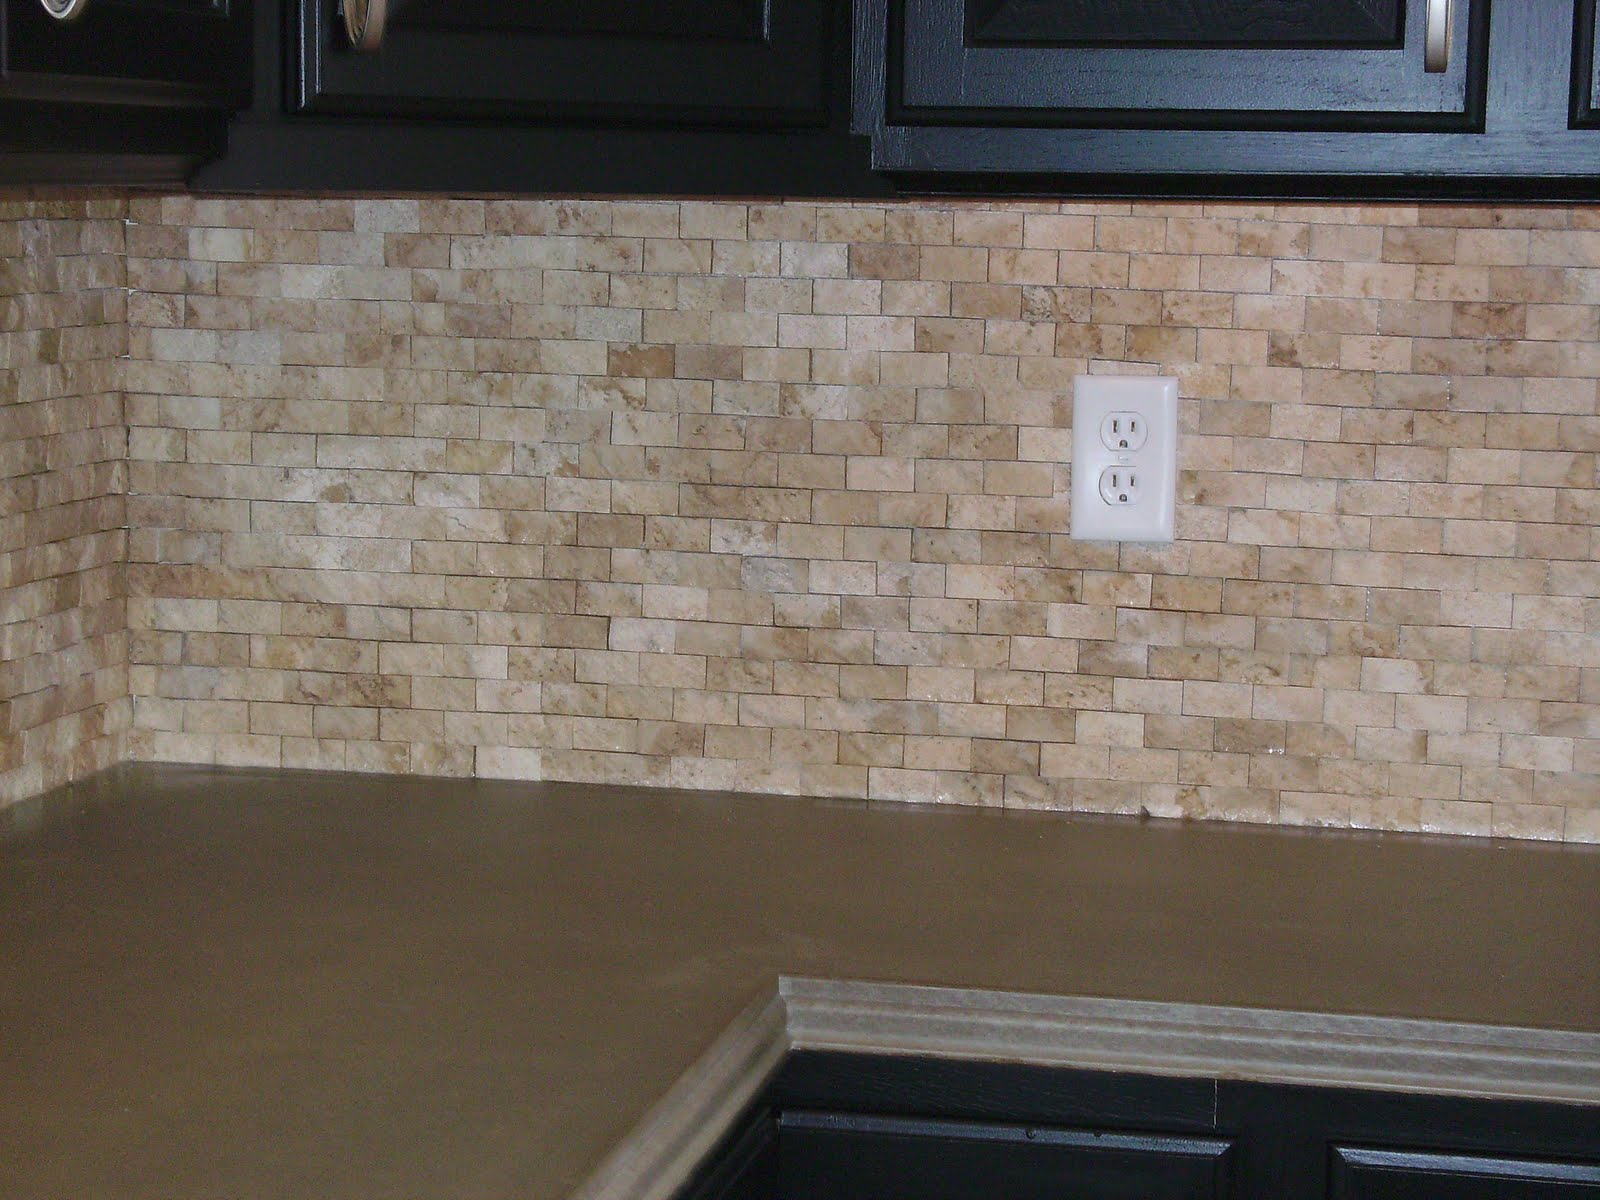 Knapp Tile And Flooring Inc Split Faced Stone Backsplash